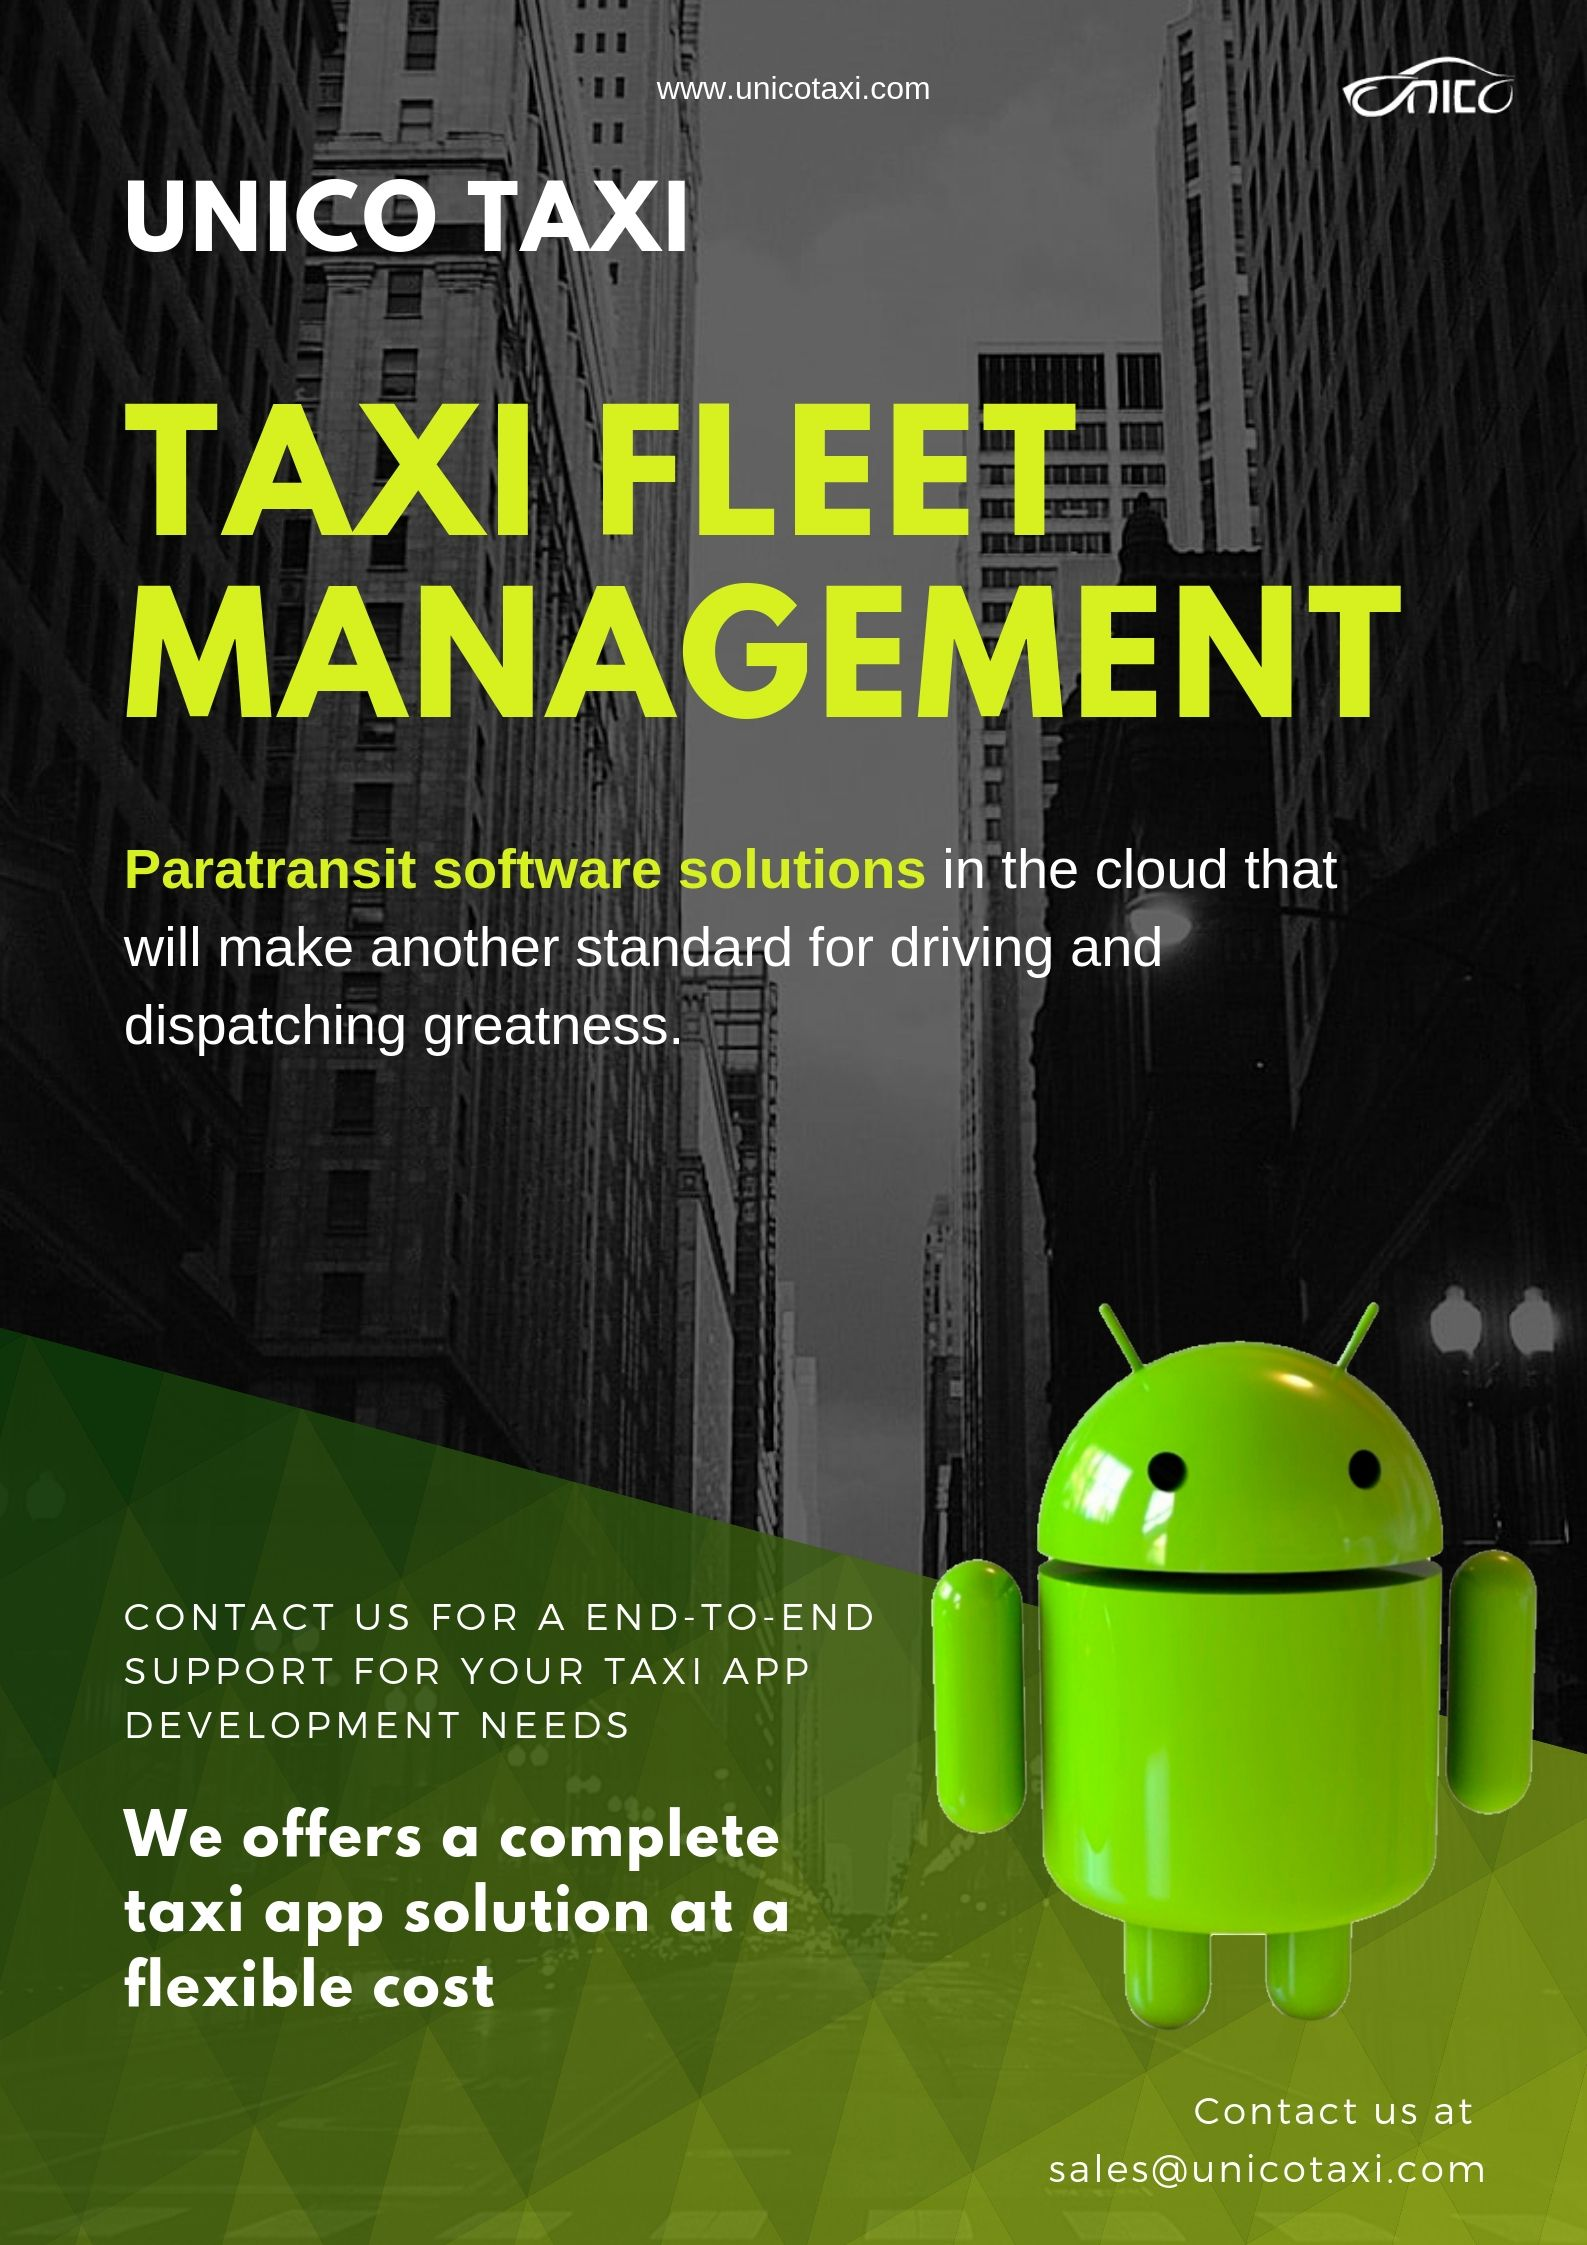 We Easily make a #taxi #fleet #management and paratransit software